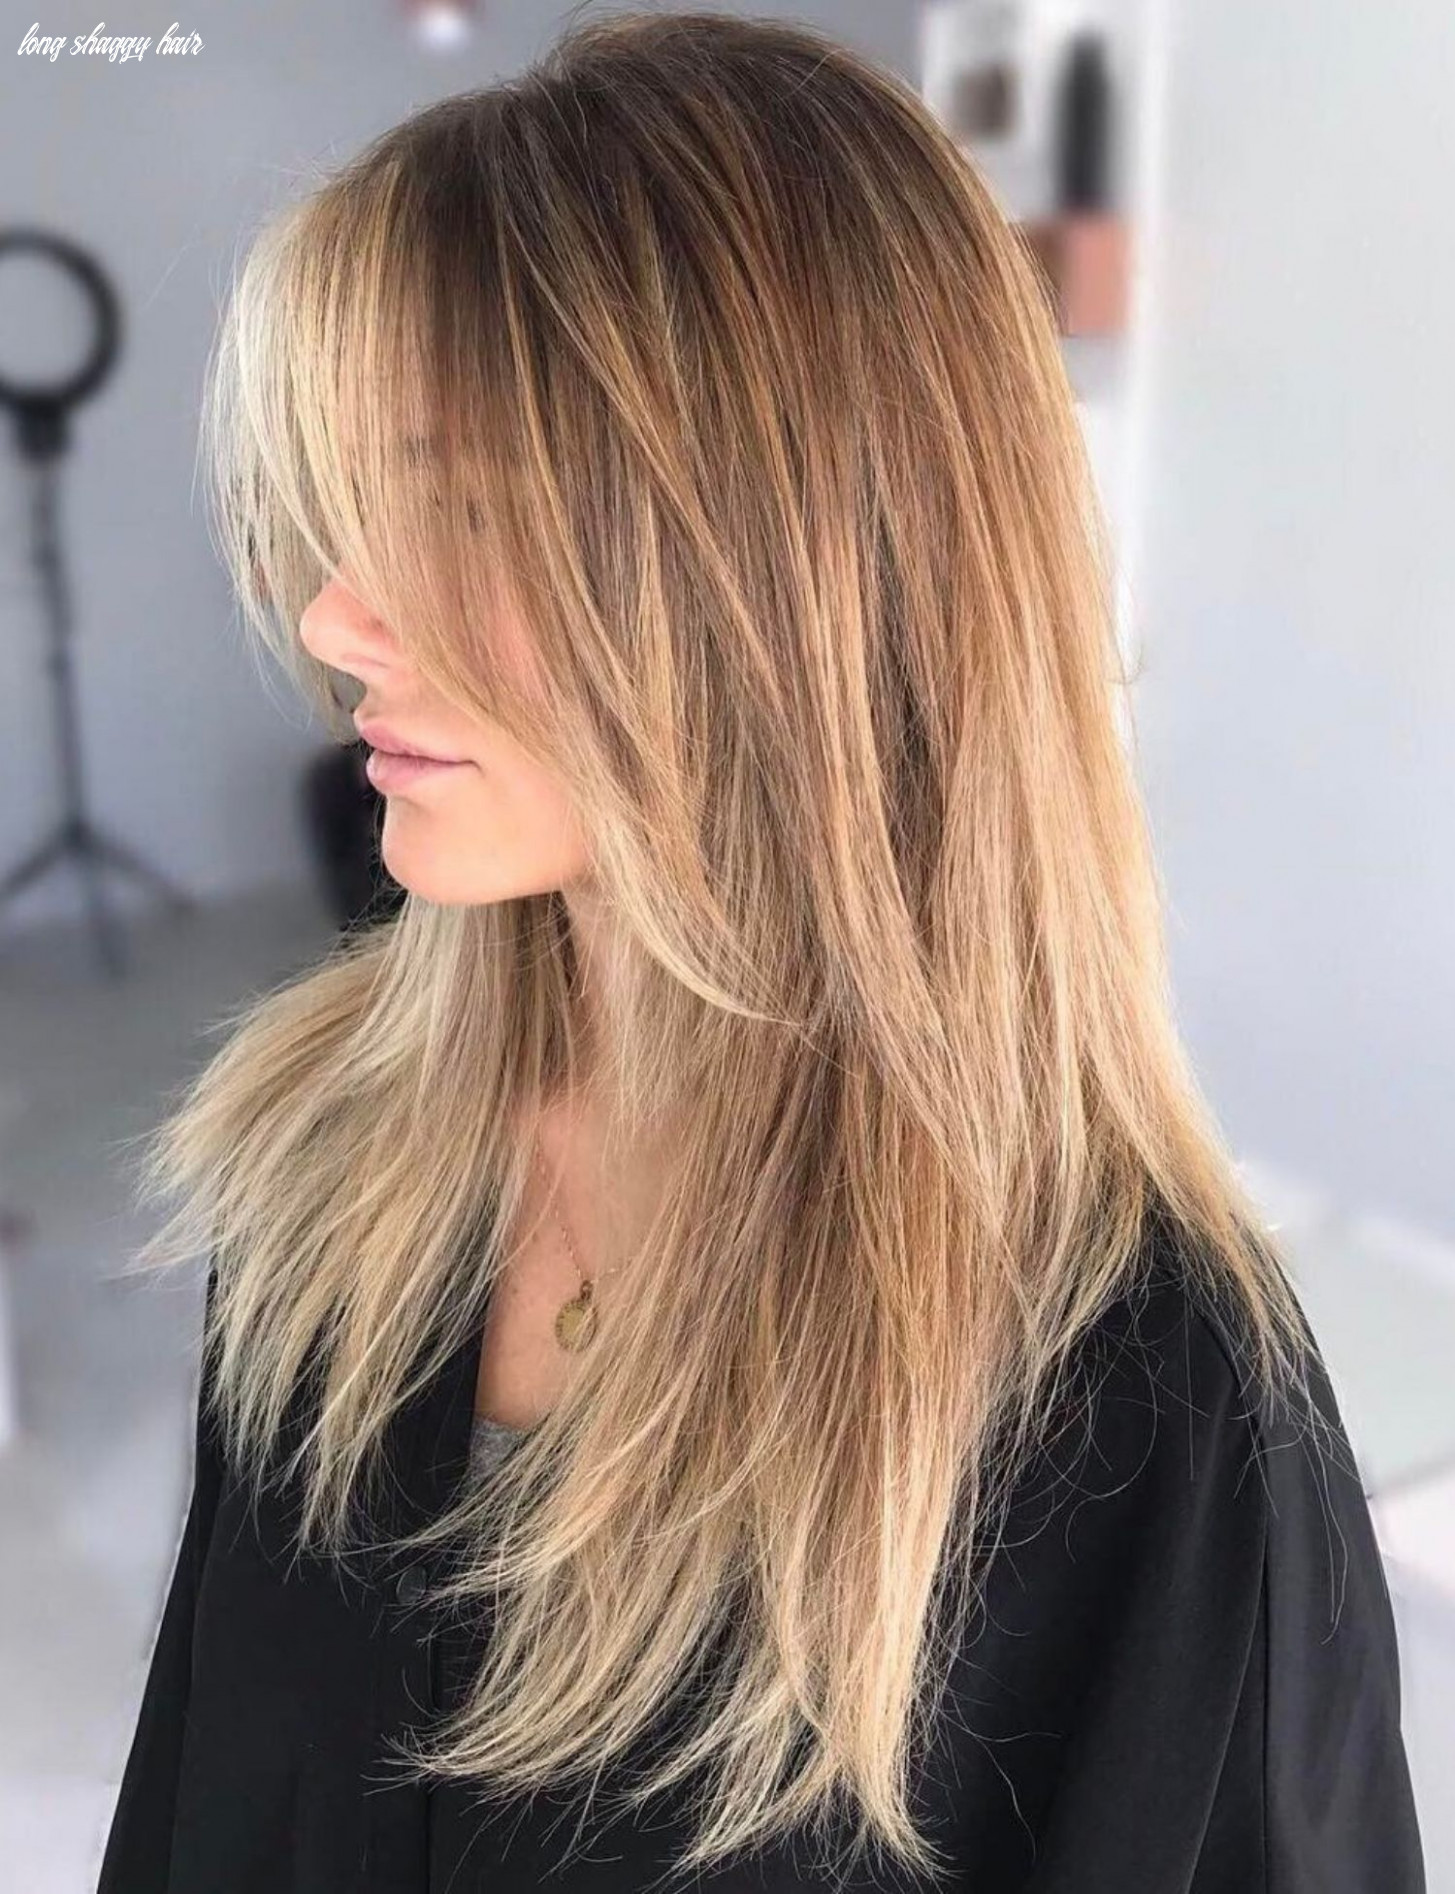 8 lovely long shag haircuts for effortless stylish looks (com